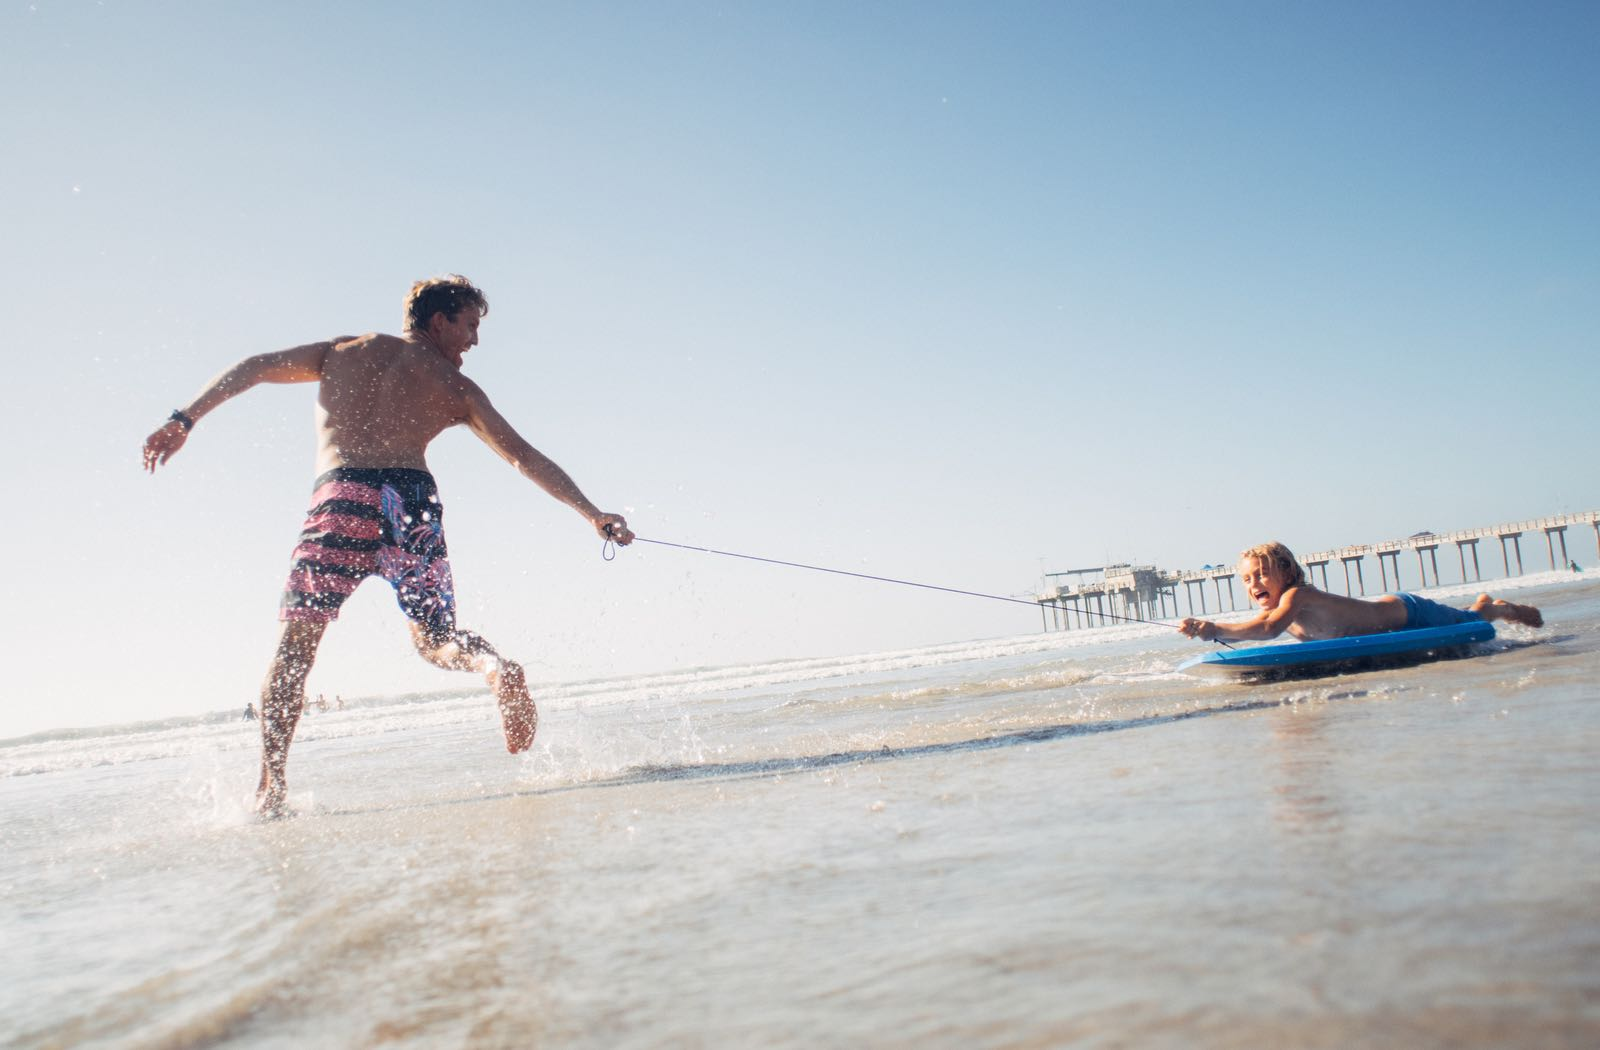 Father and Son playing on the beach - Top Things to Do in San Diego